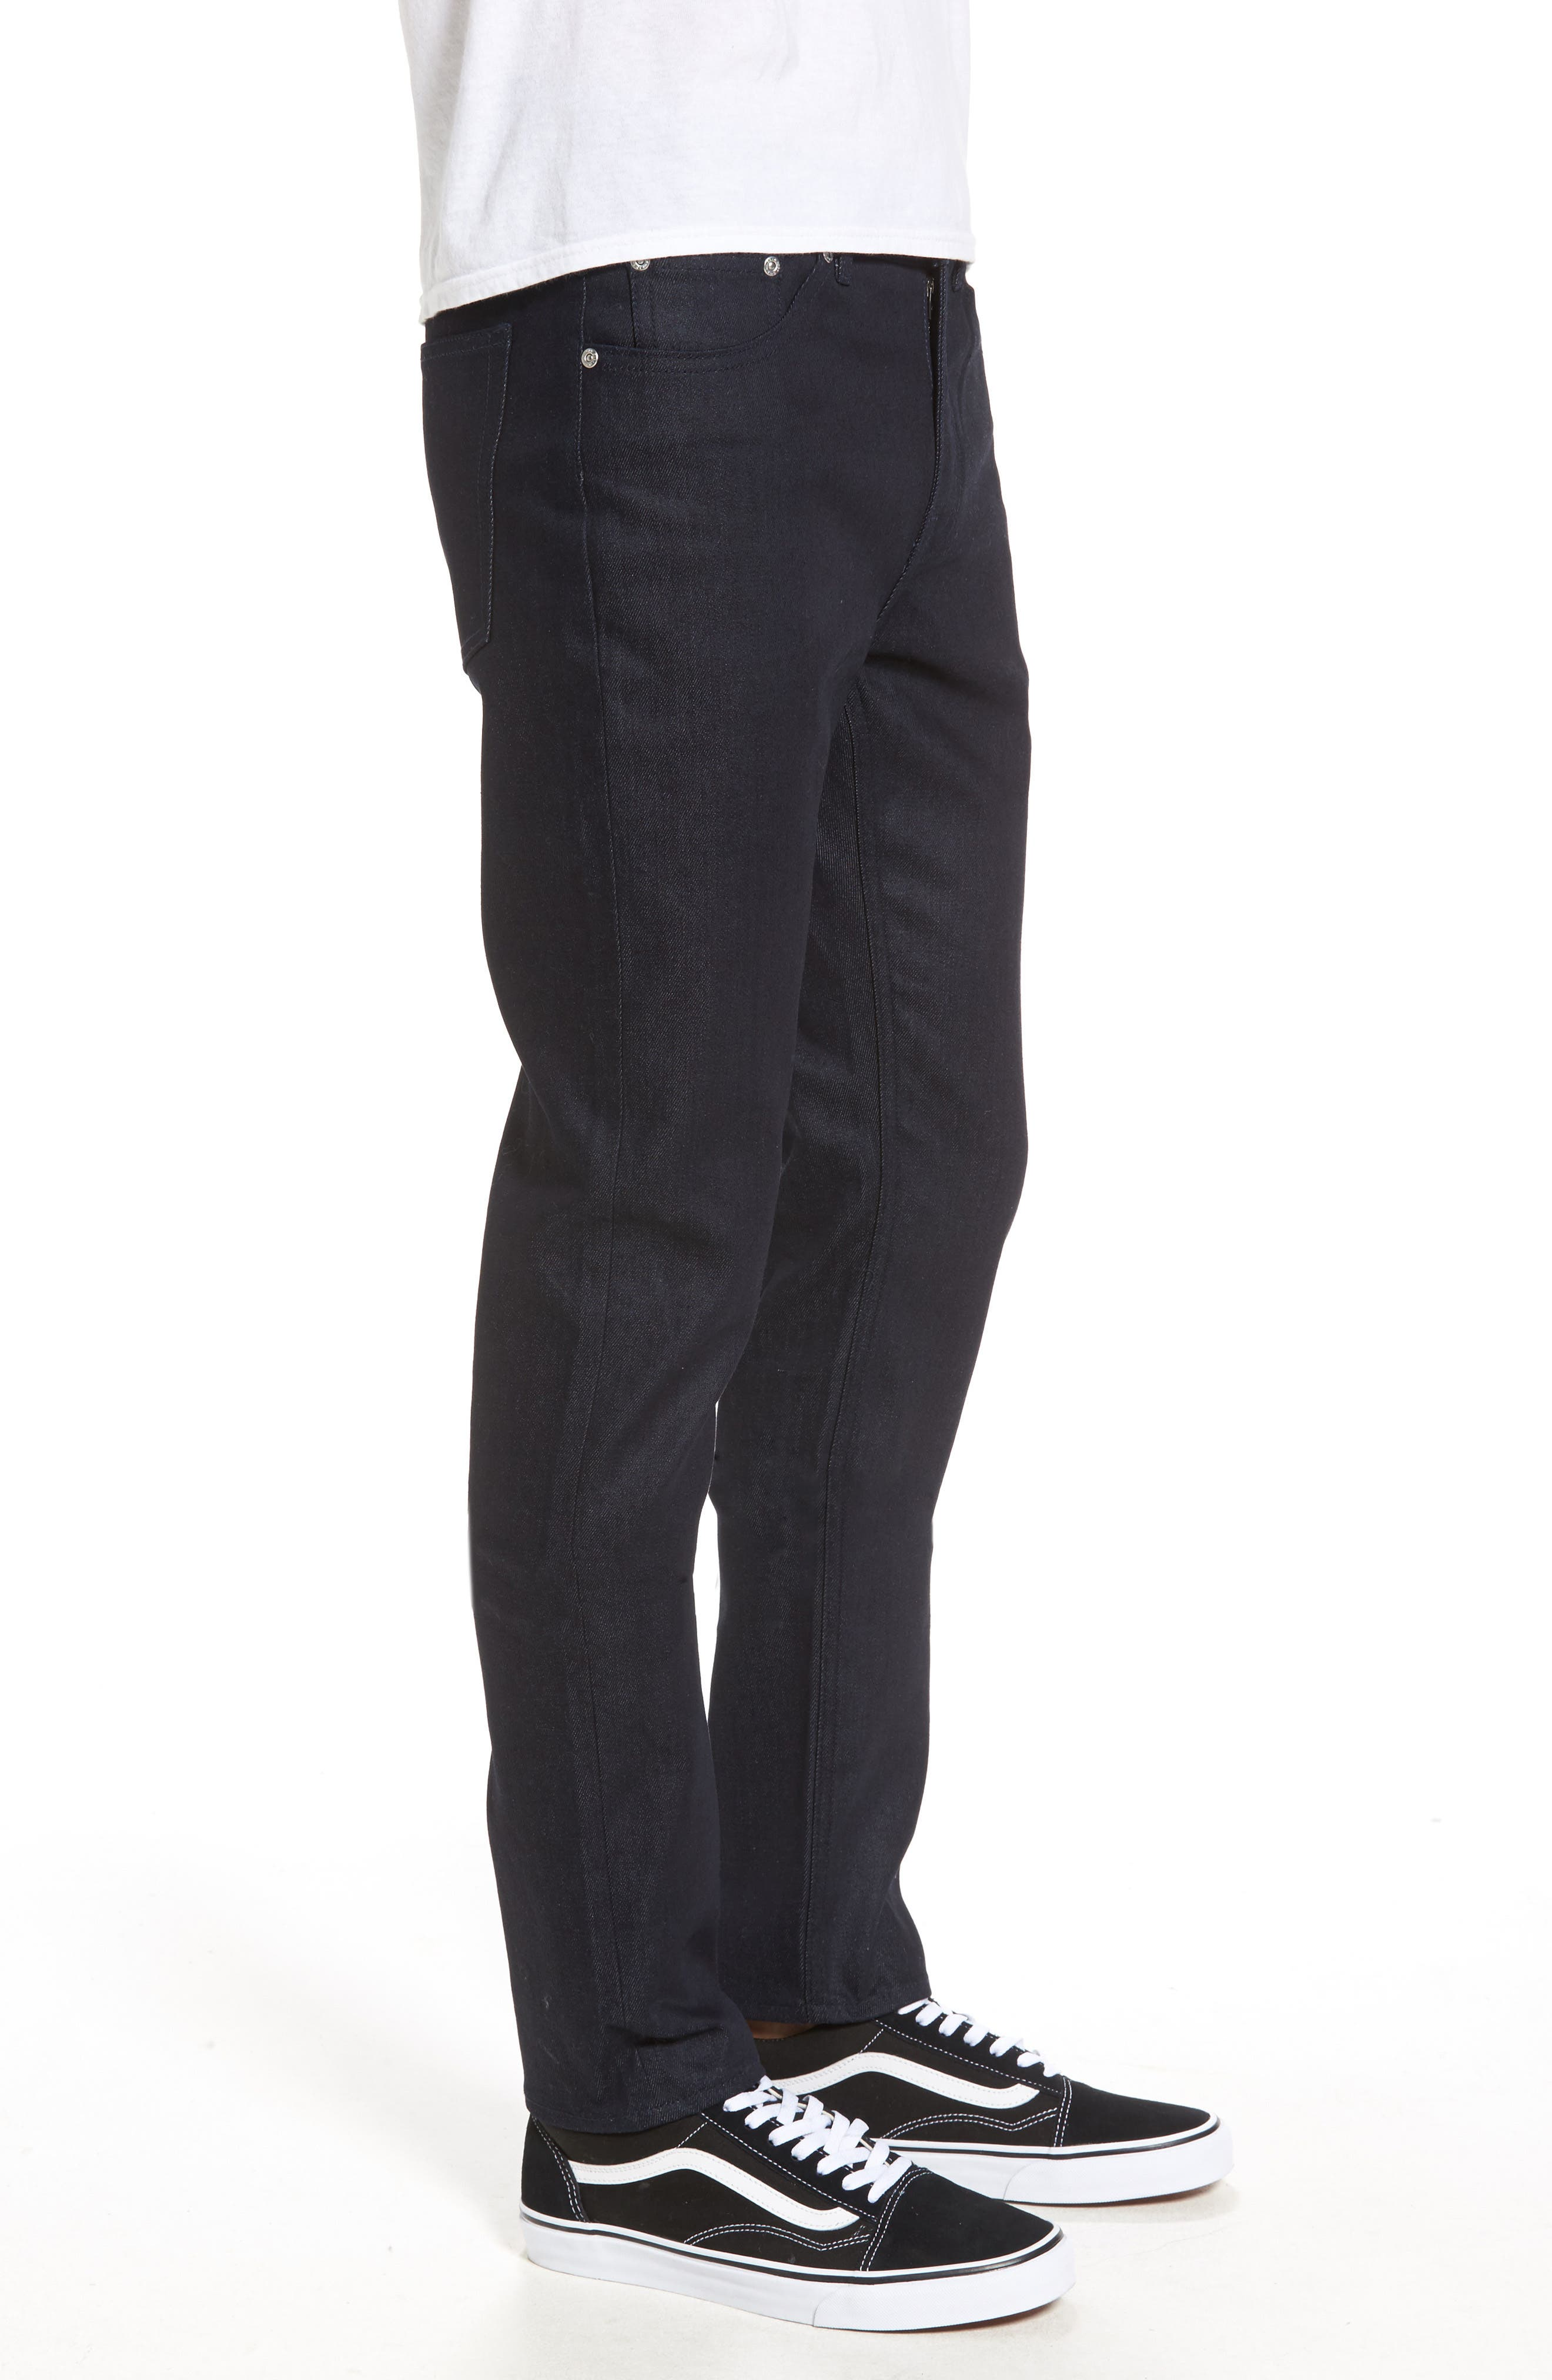 Sonic Skinny Fit Jeans,                             Alternate thumbnail 3, color,                             402